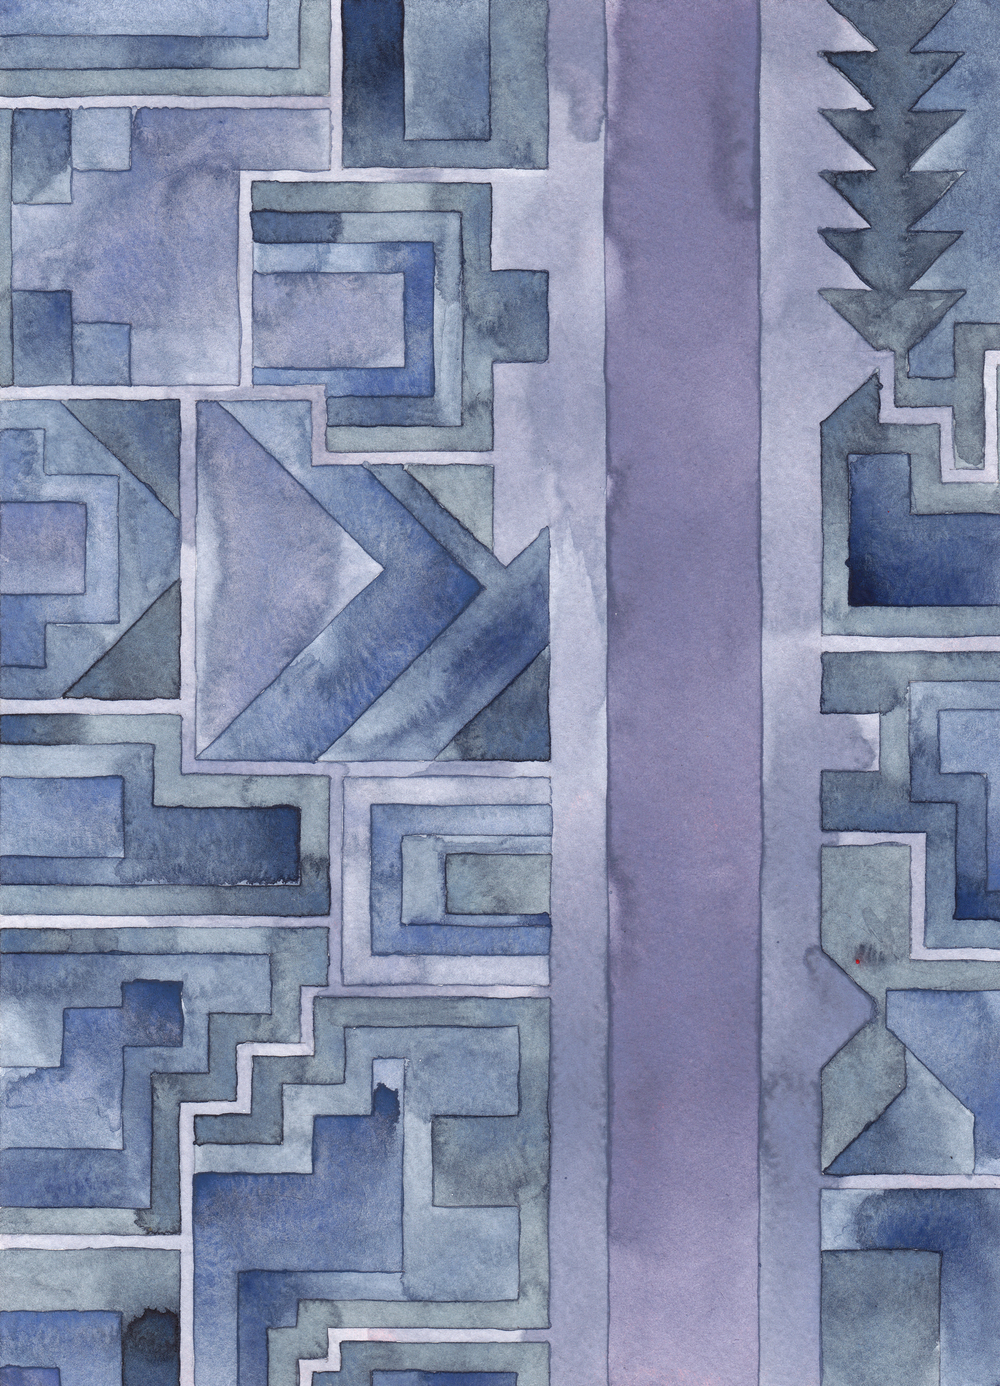 Cityscape 13,  2014 watercolor on watercolor paper 11 ¾ x 8 ½  inches